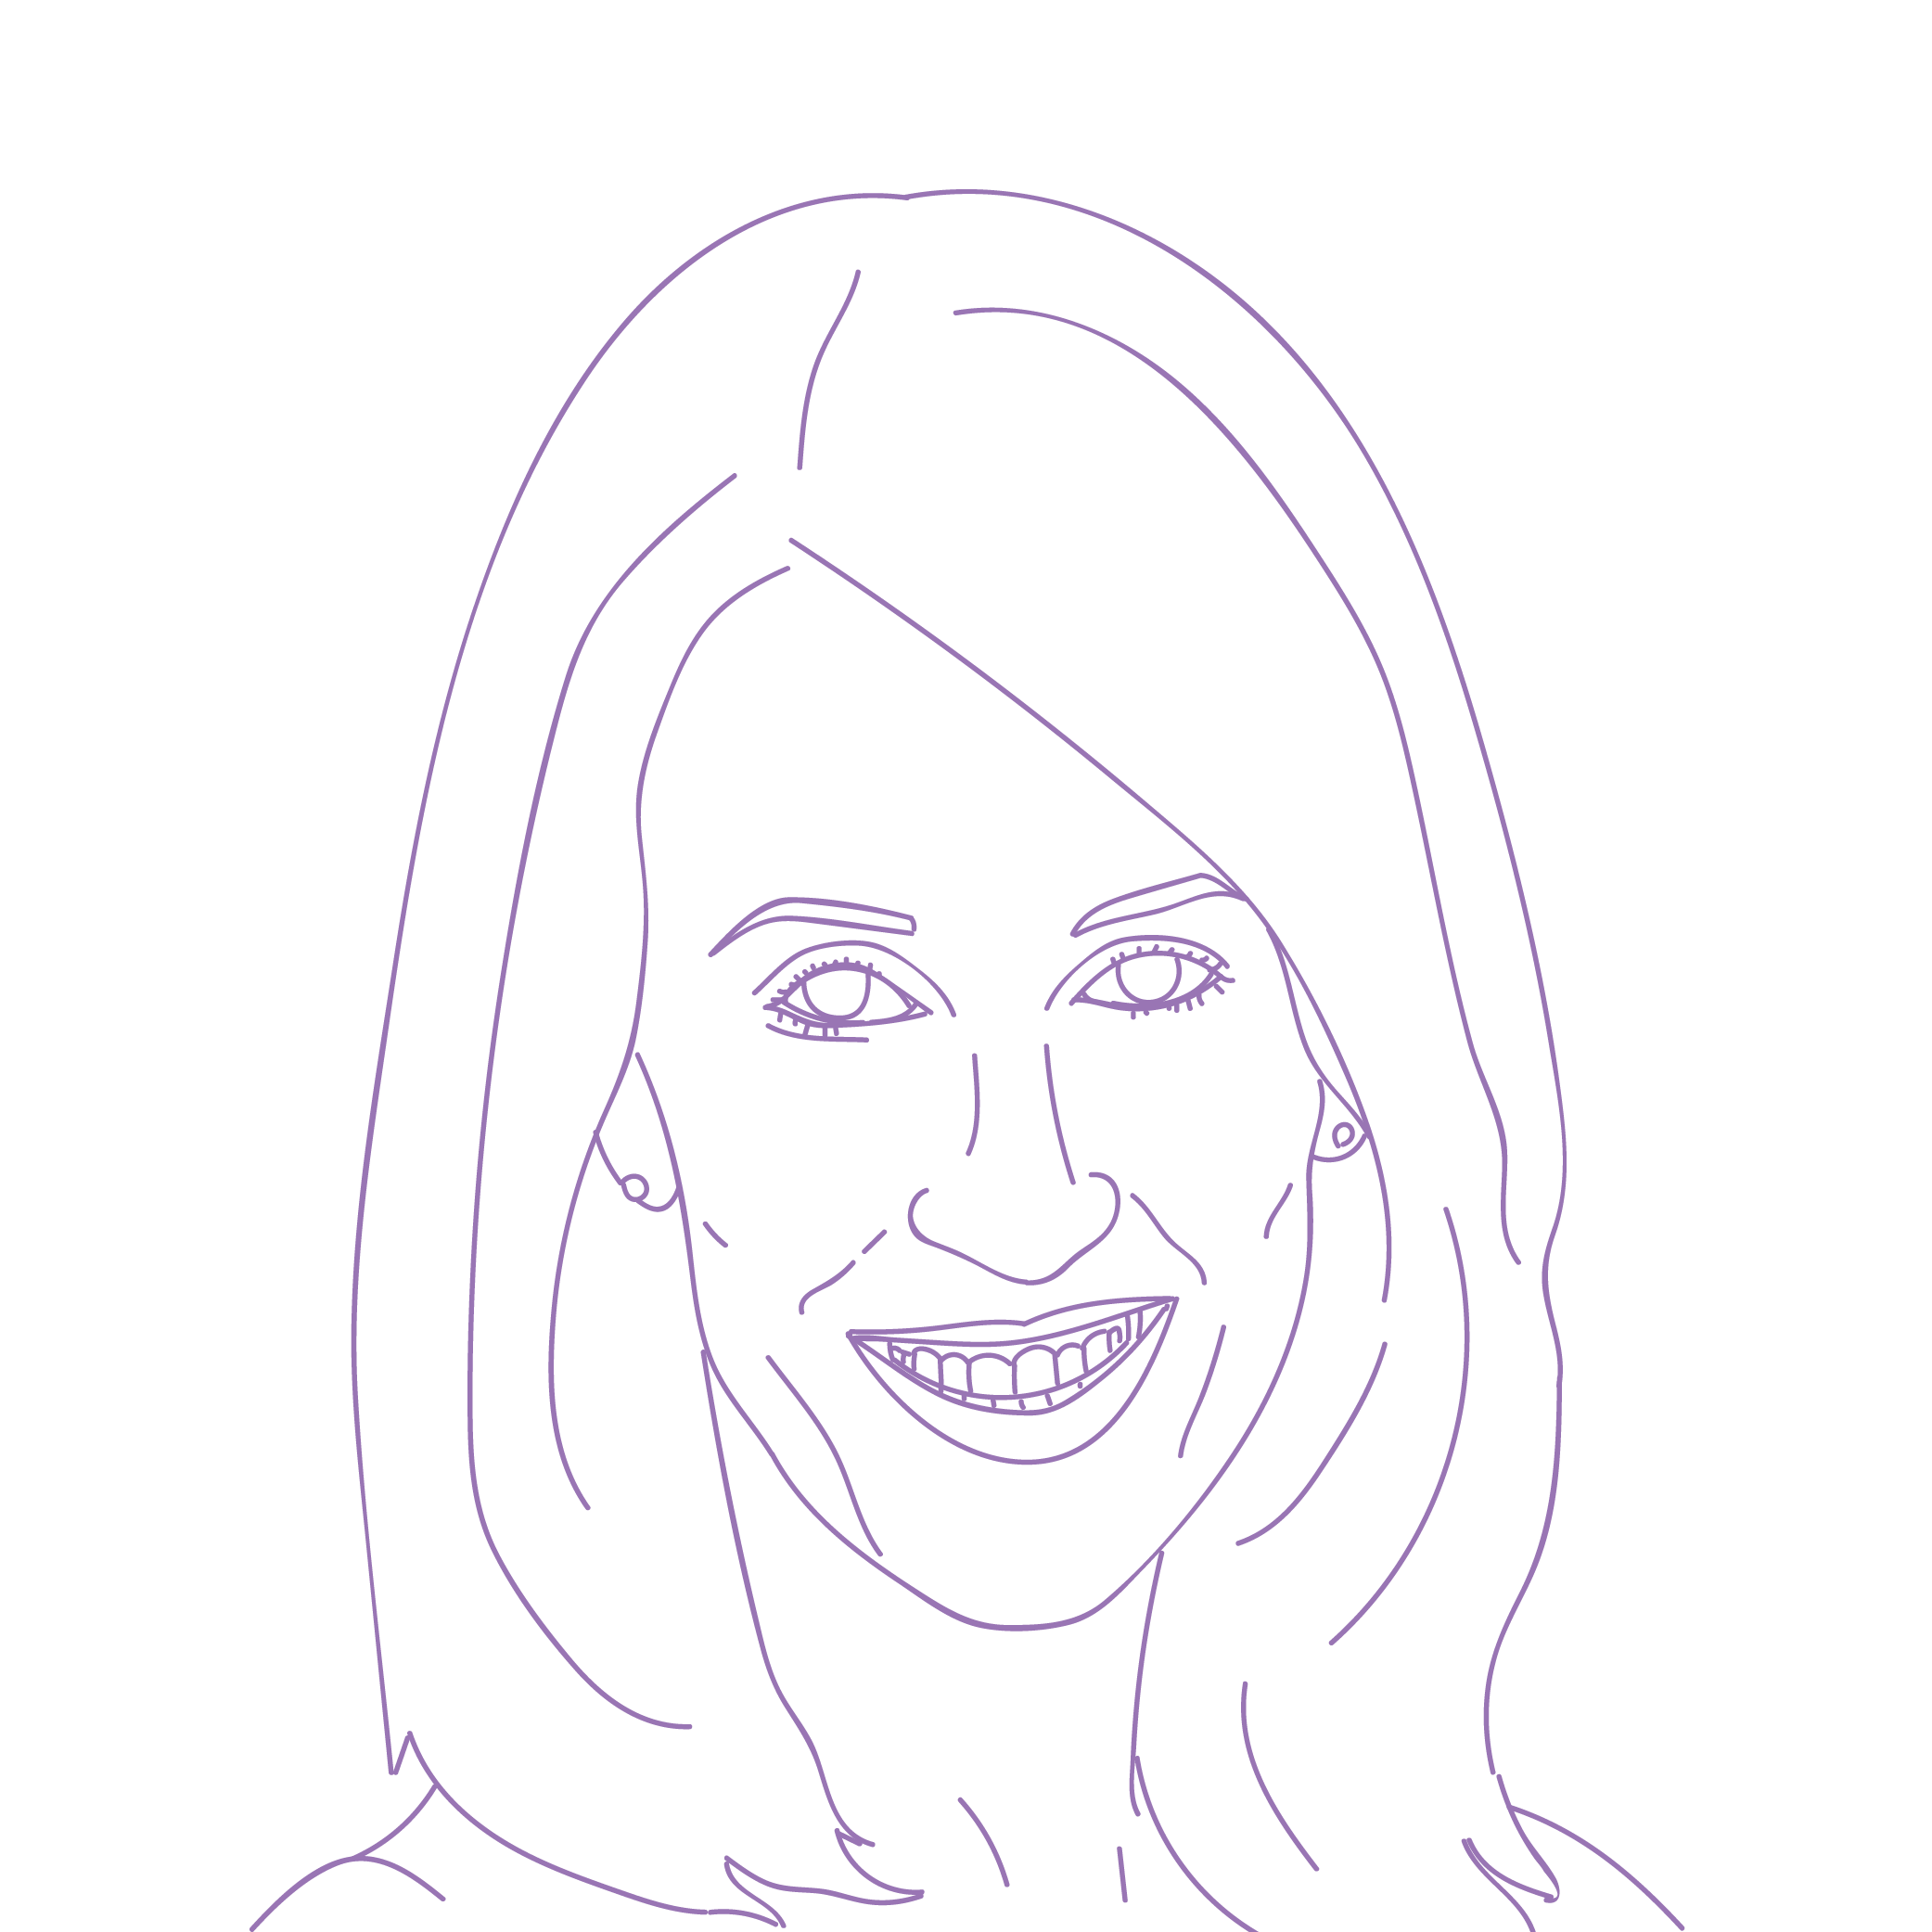 Michelle Peluso, Site59 founder and Travelocity CEO